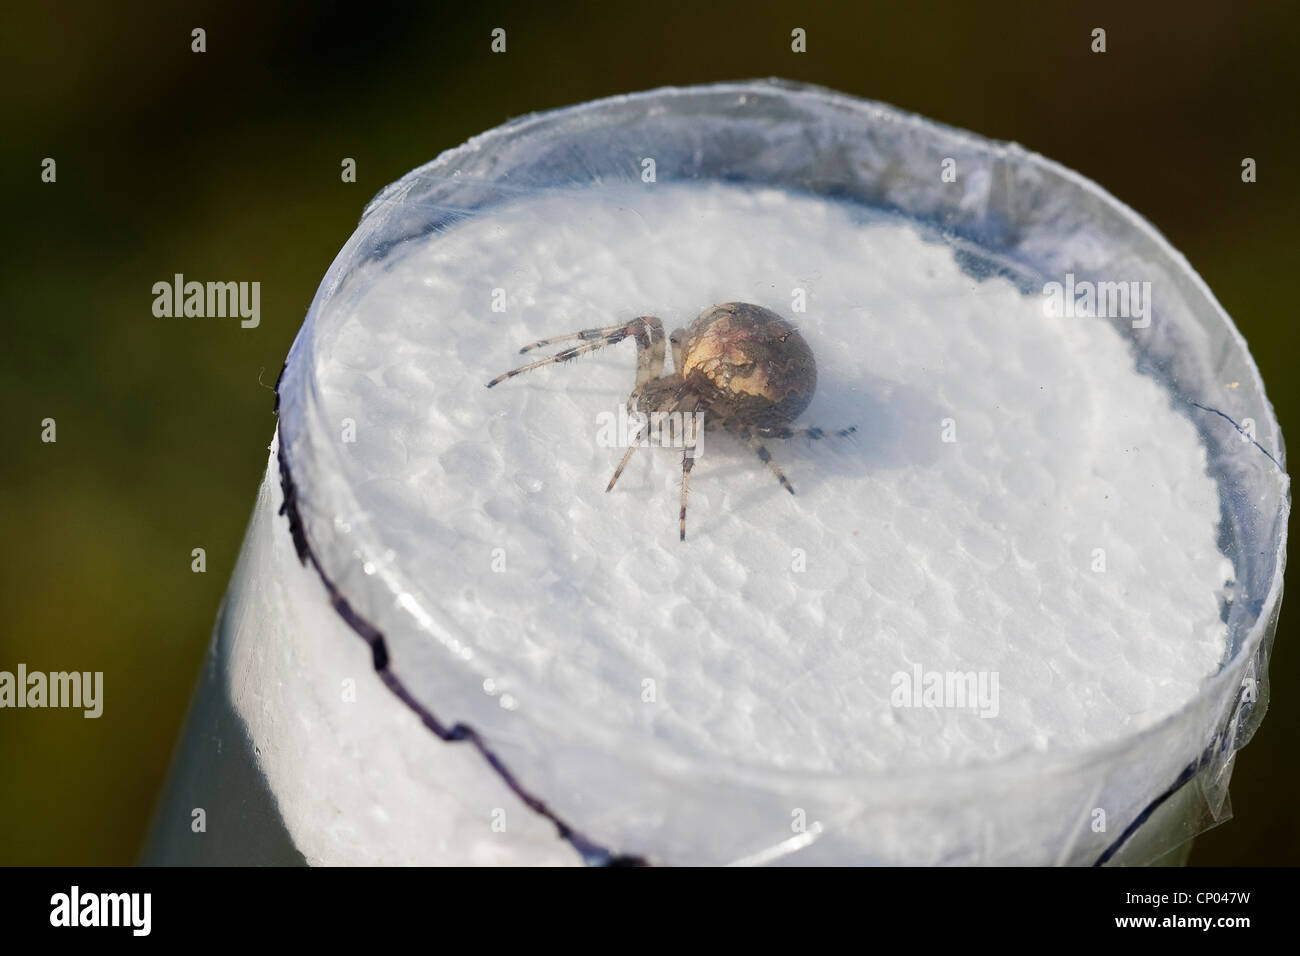 spider in an observation jar, Germany - Stock Image